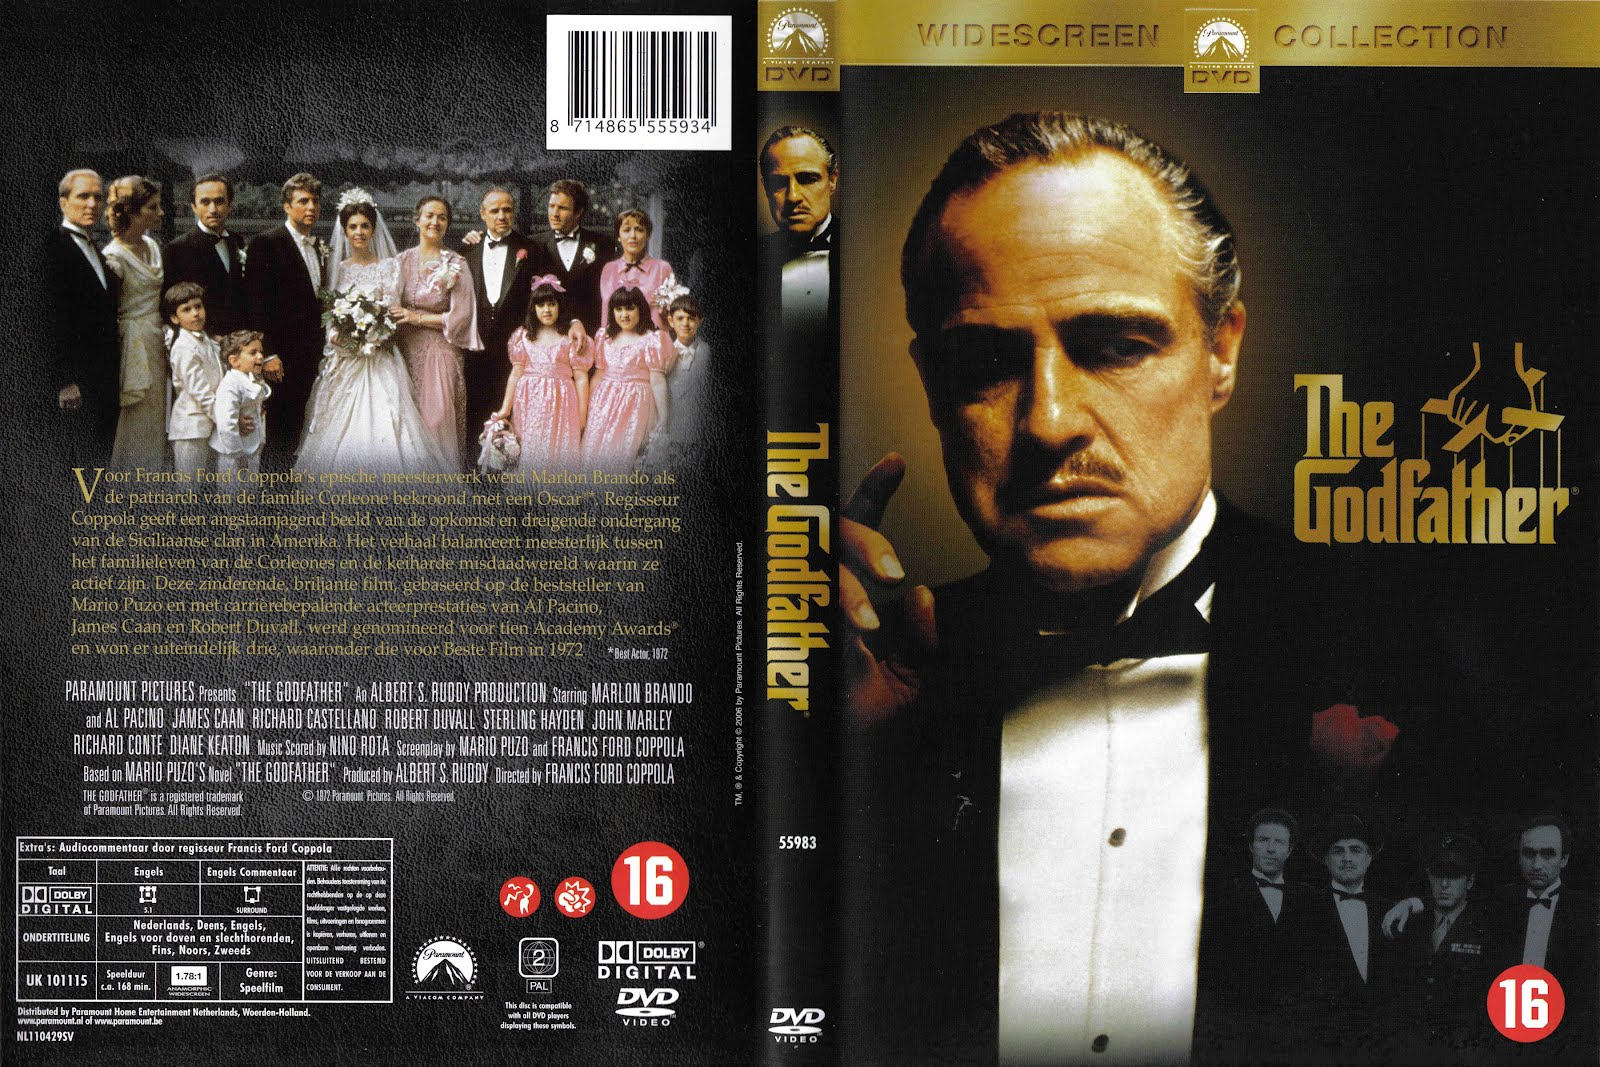 The Godfather Dvd Front Cover